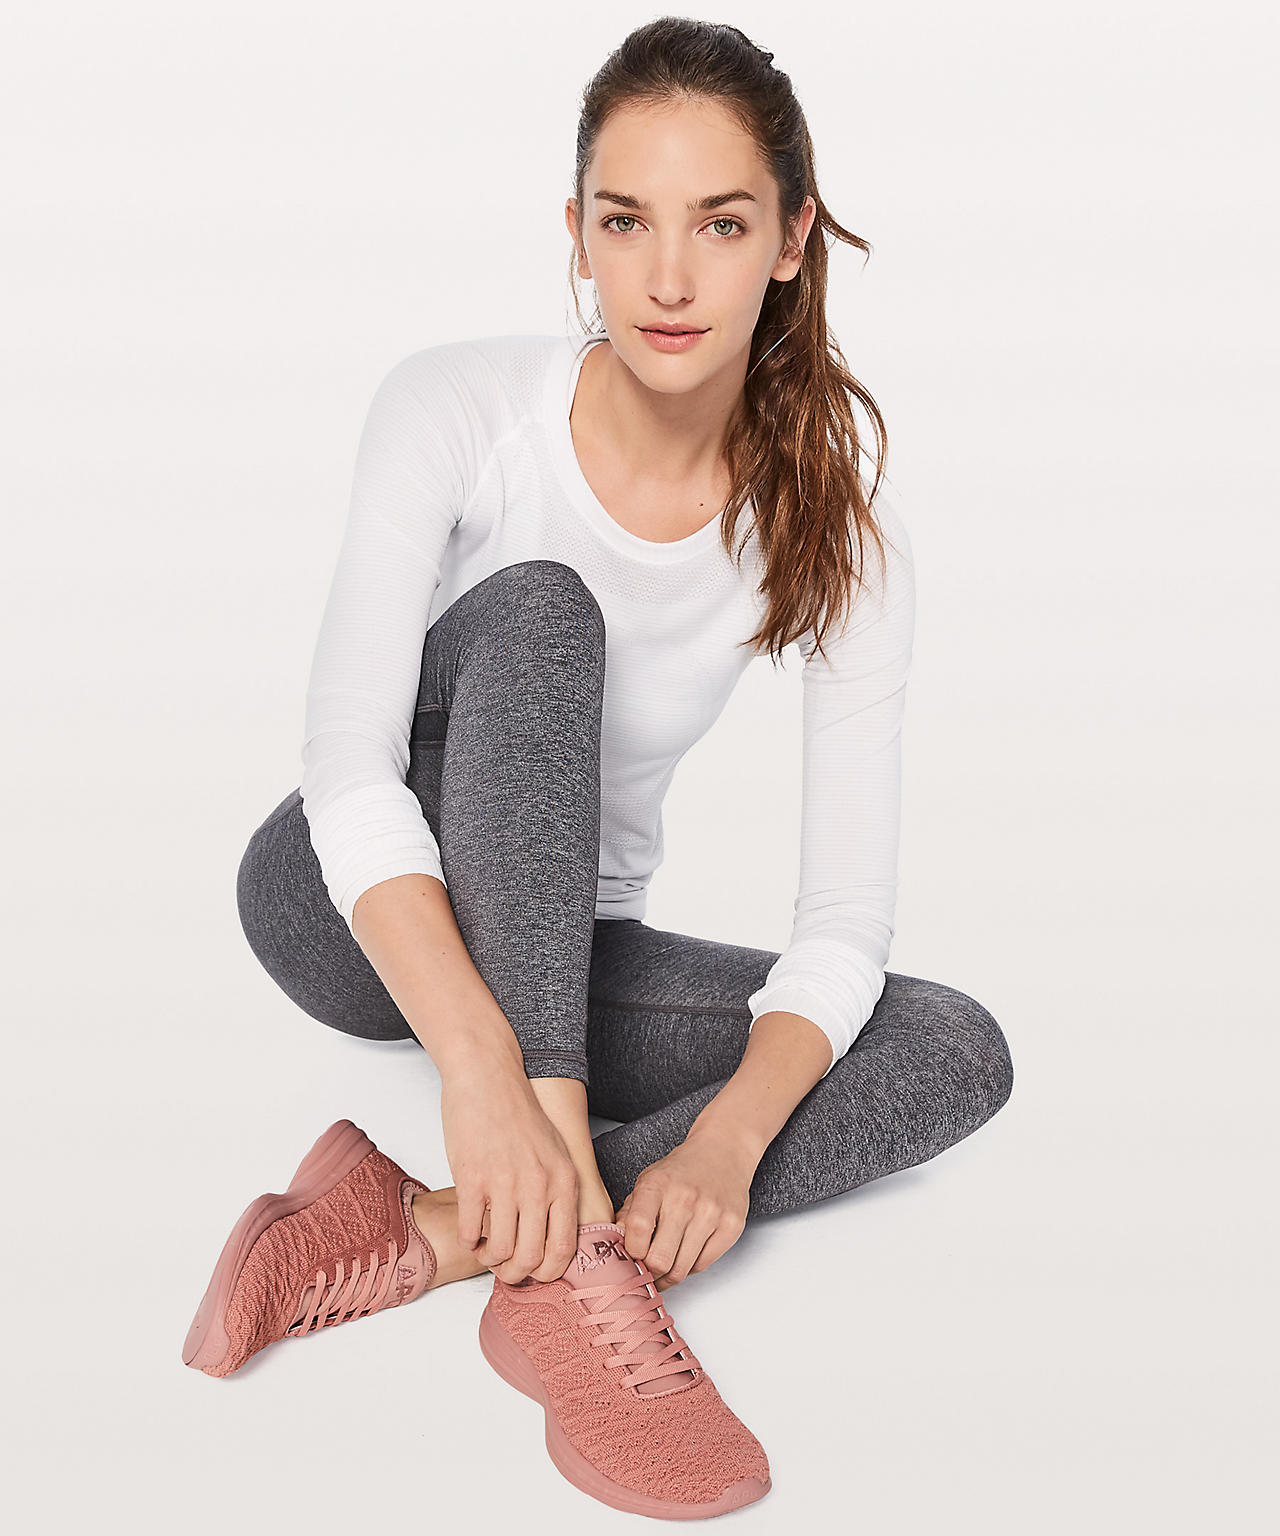 A model wearing Lululemon and APL